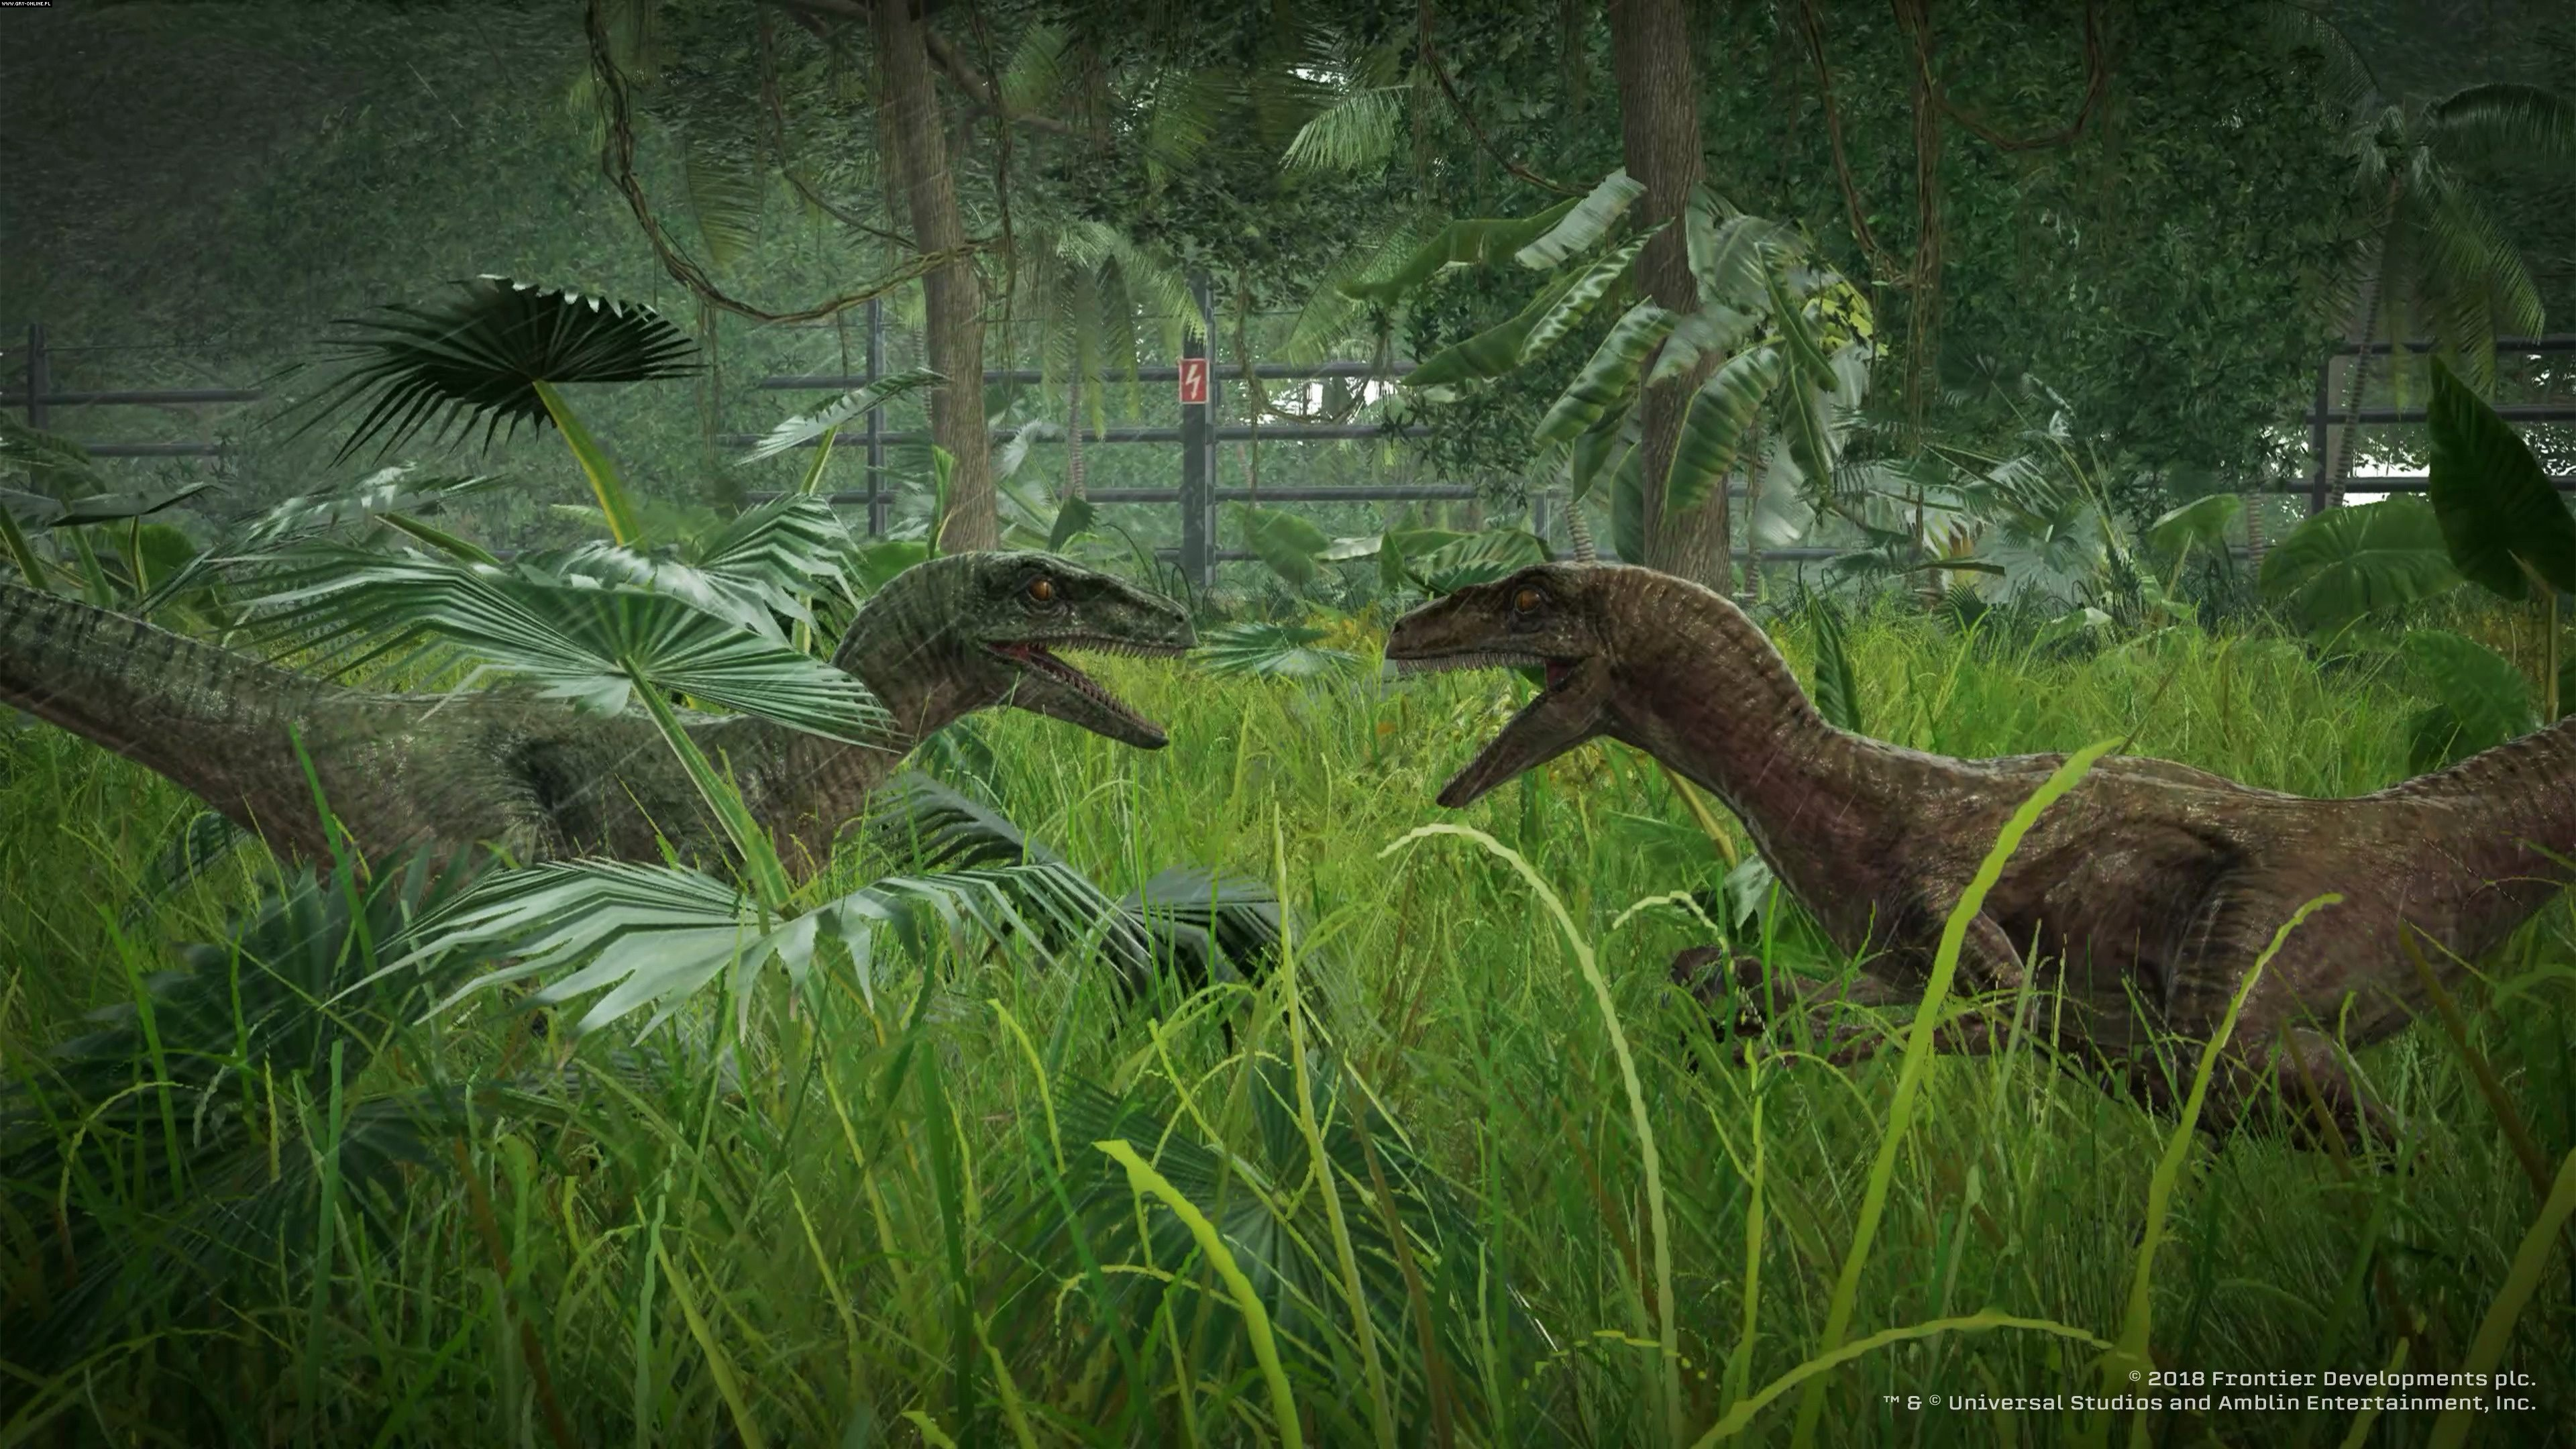 Jurassic World Evolution PC, PS4, XONE Games Image 12/28, Frontier Developments